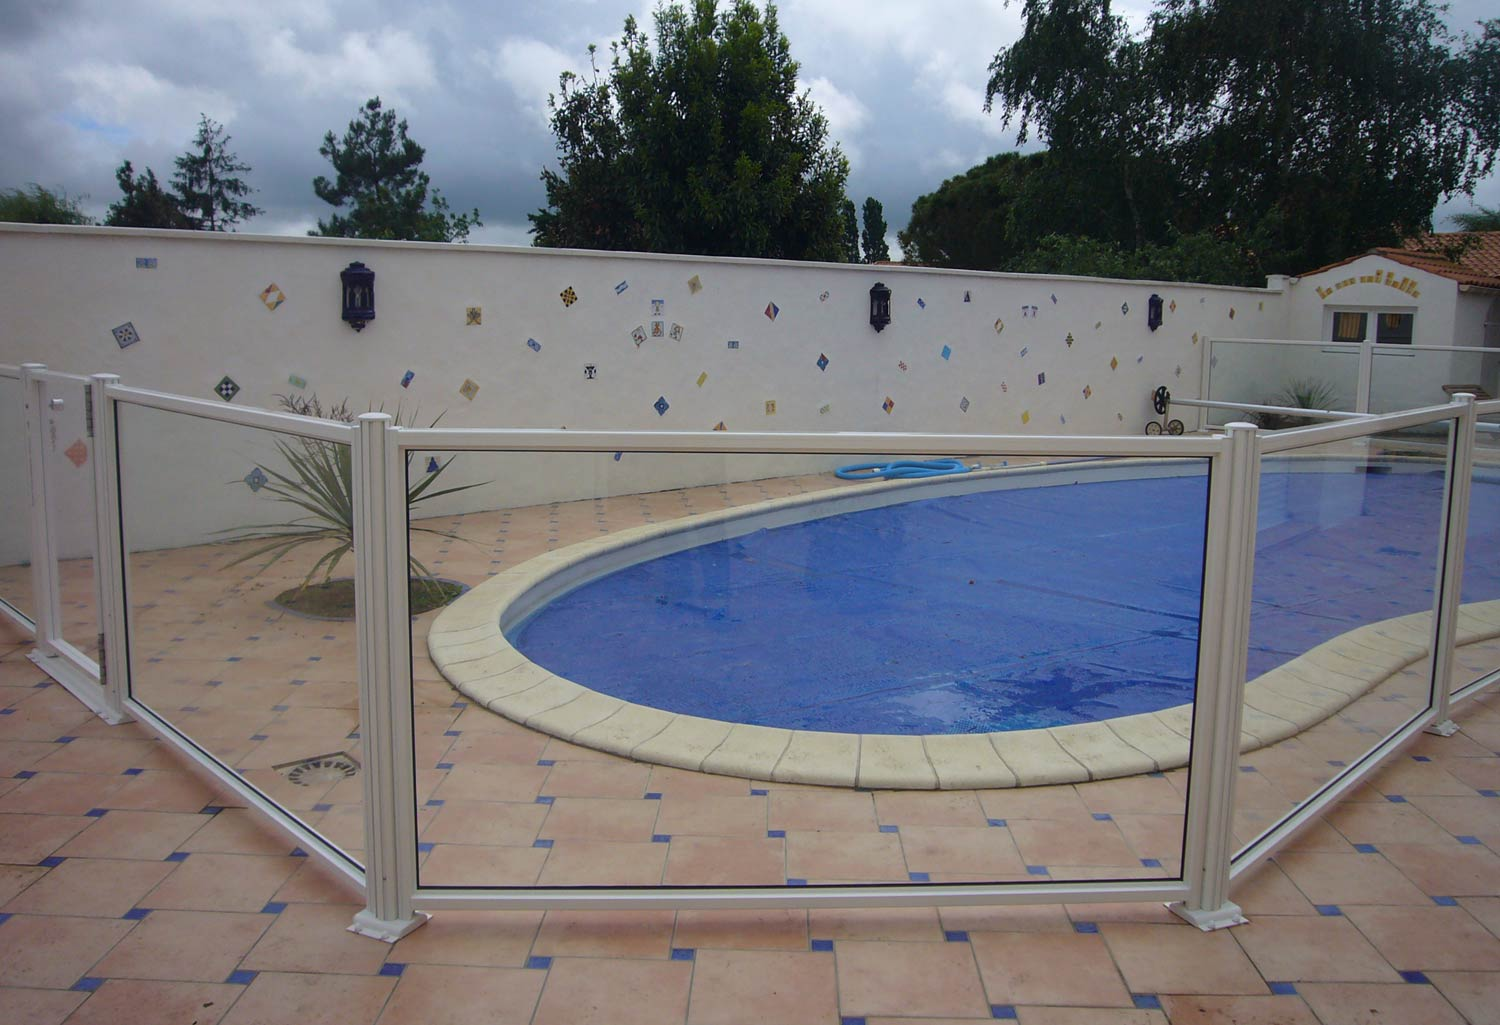 Protection piscine trendy intex bche de protection for Protection piscine hors sol